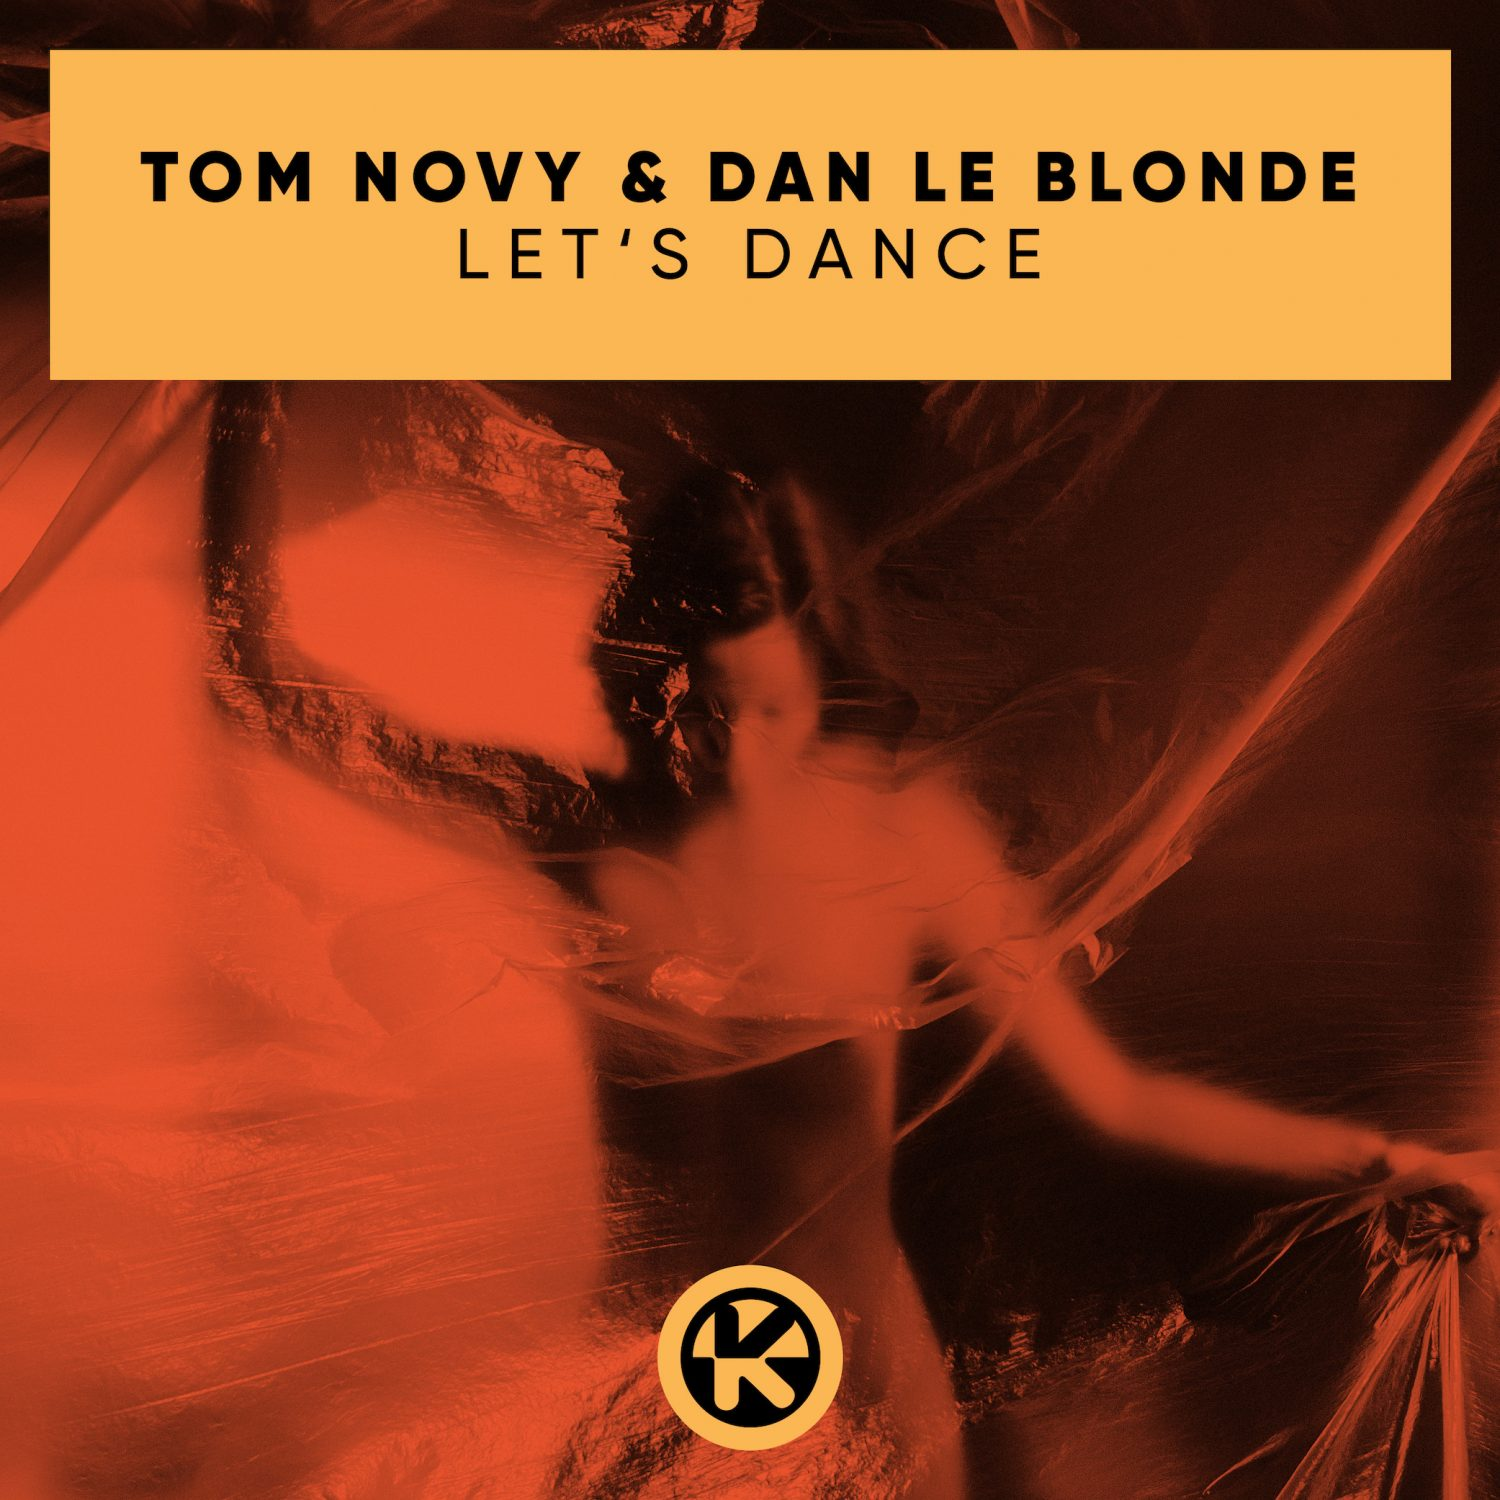 TOM NOVY & DAN LE BLONDE - LET'S DANCE